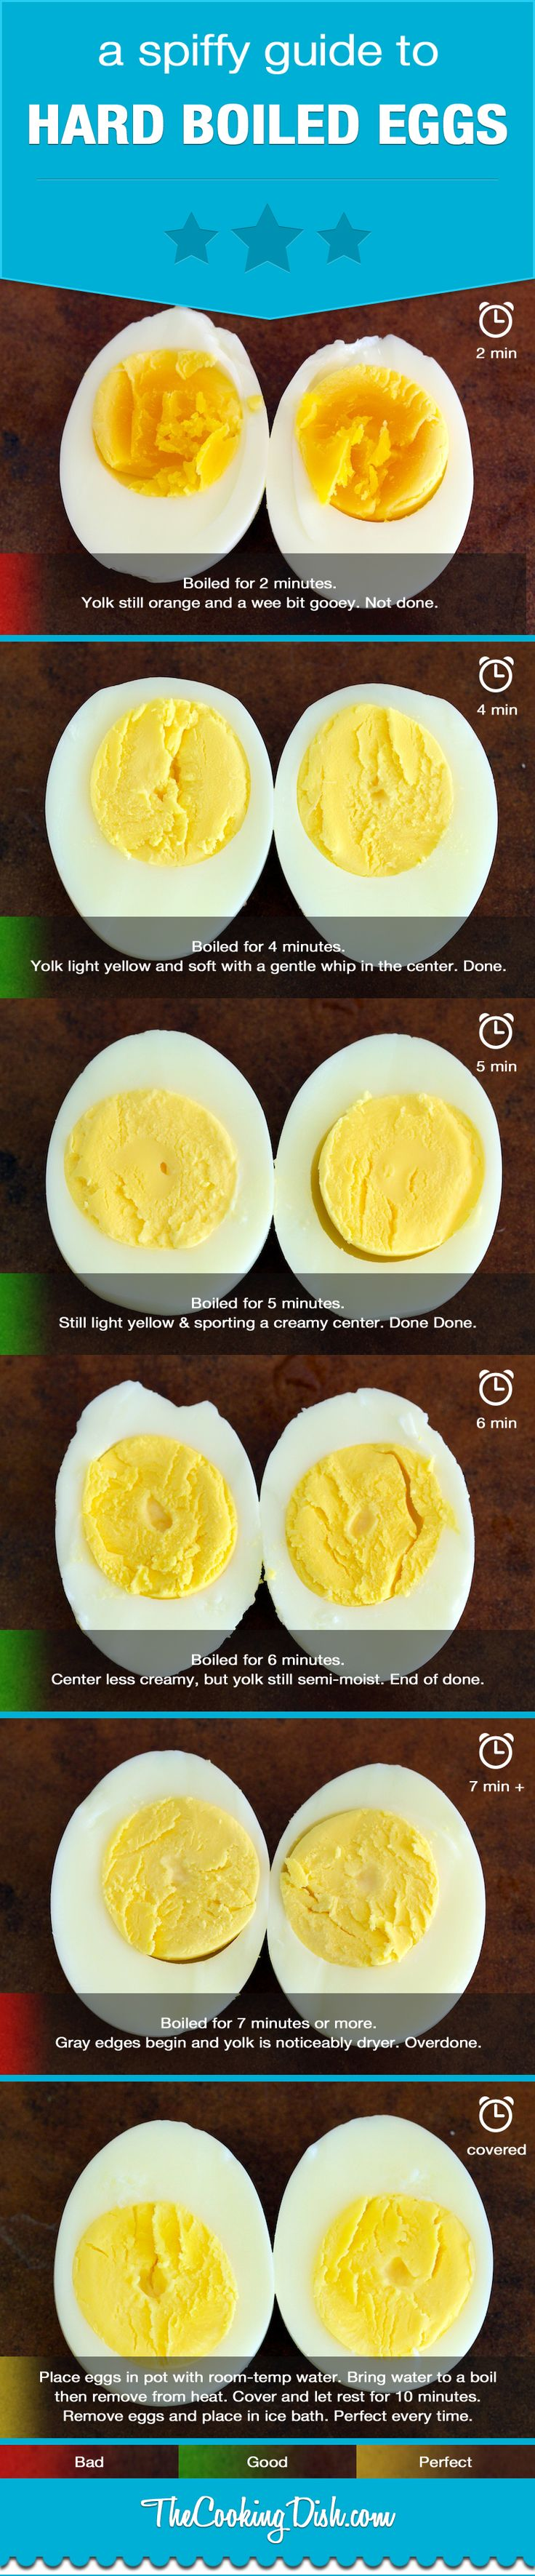 How To Hard Boil An Egg Did You Know That Most People Overcook Their Eggs